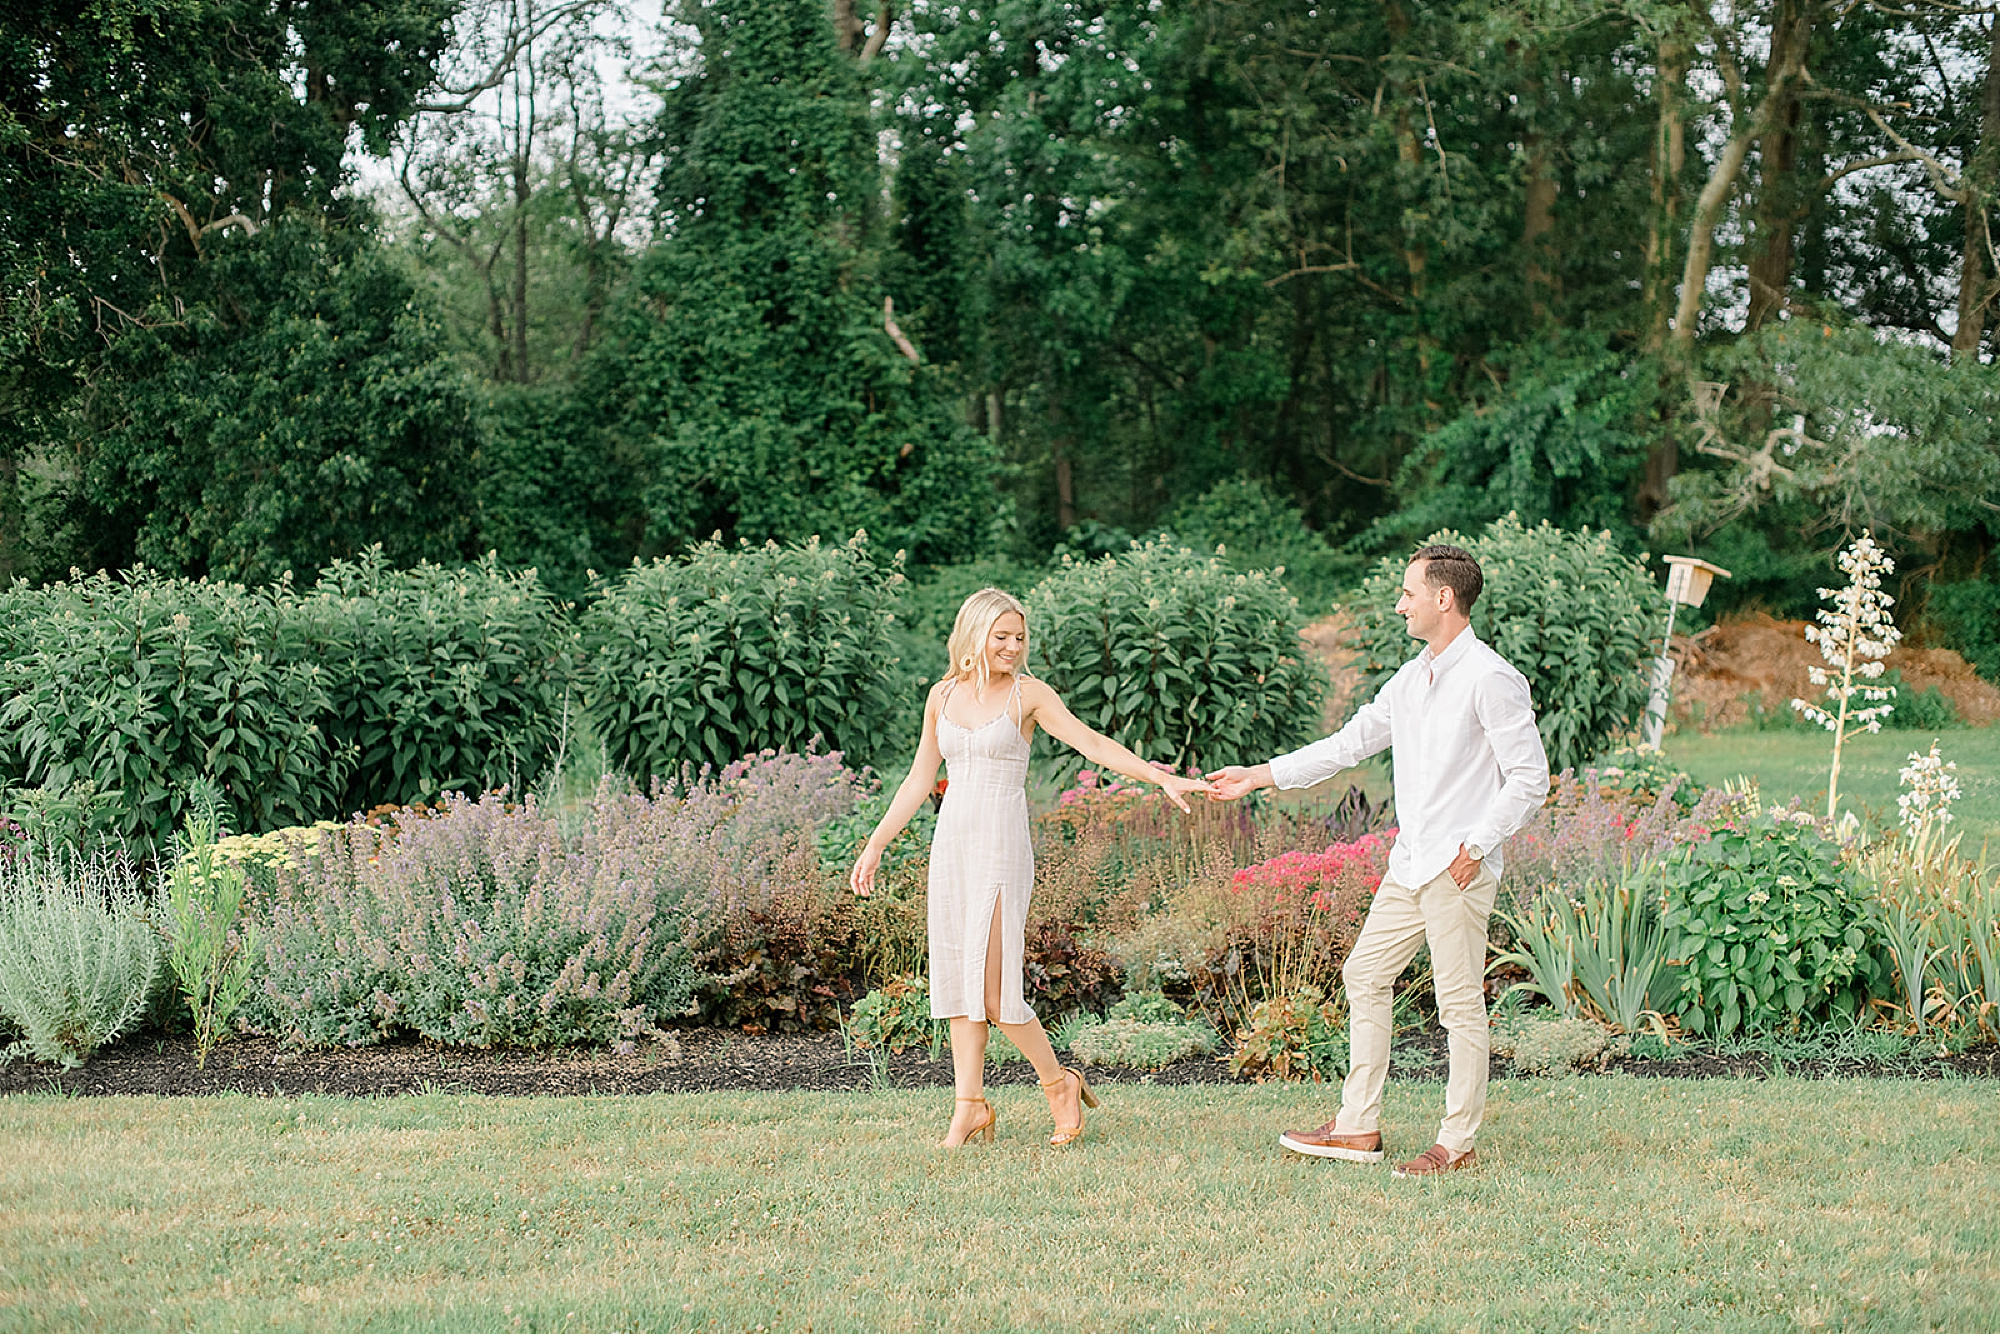 Cape May Winery New Jersey Engagement Photography by Magdalena Studios 0010